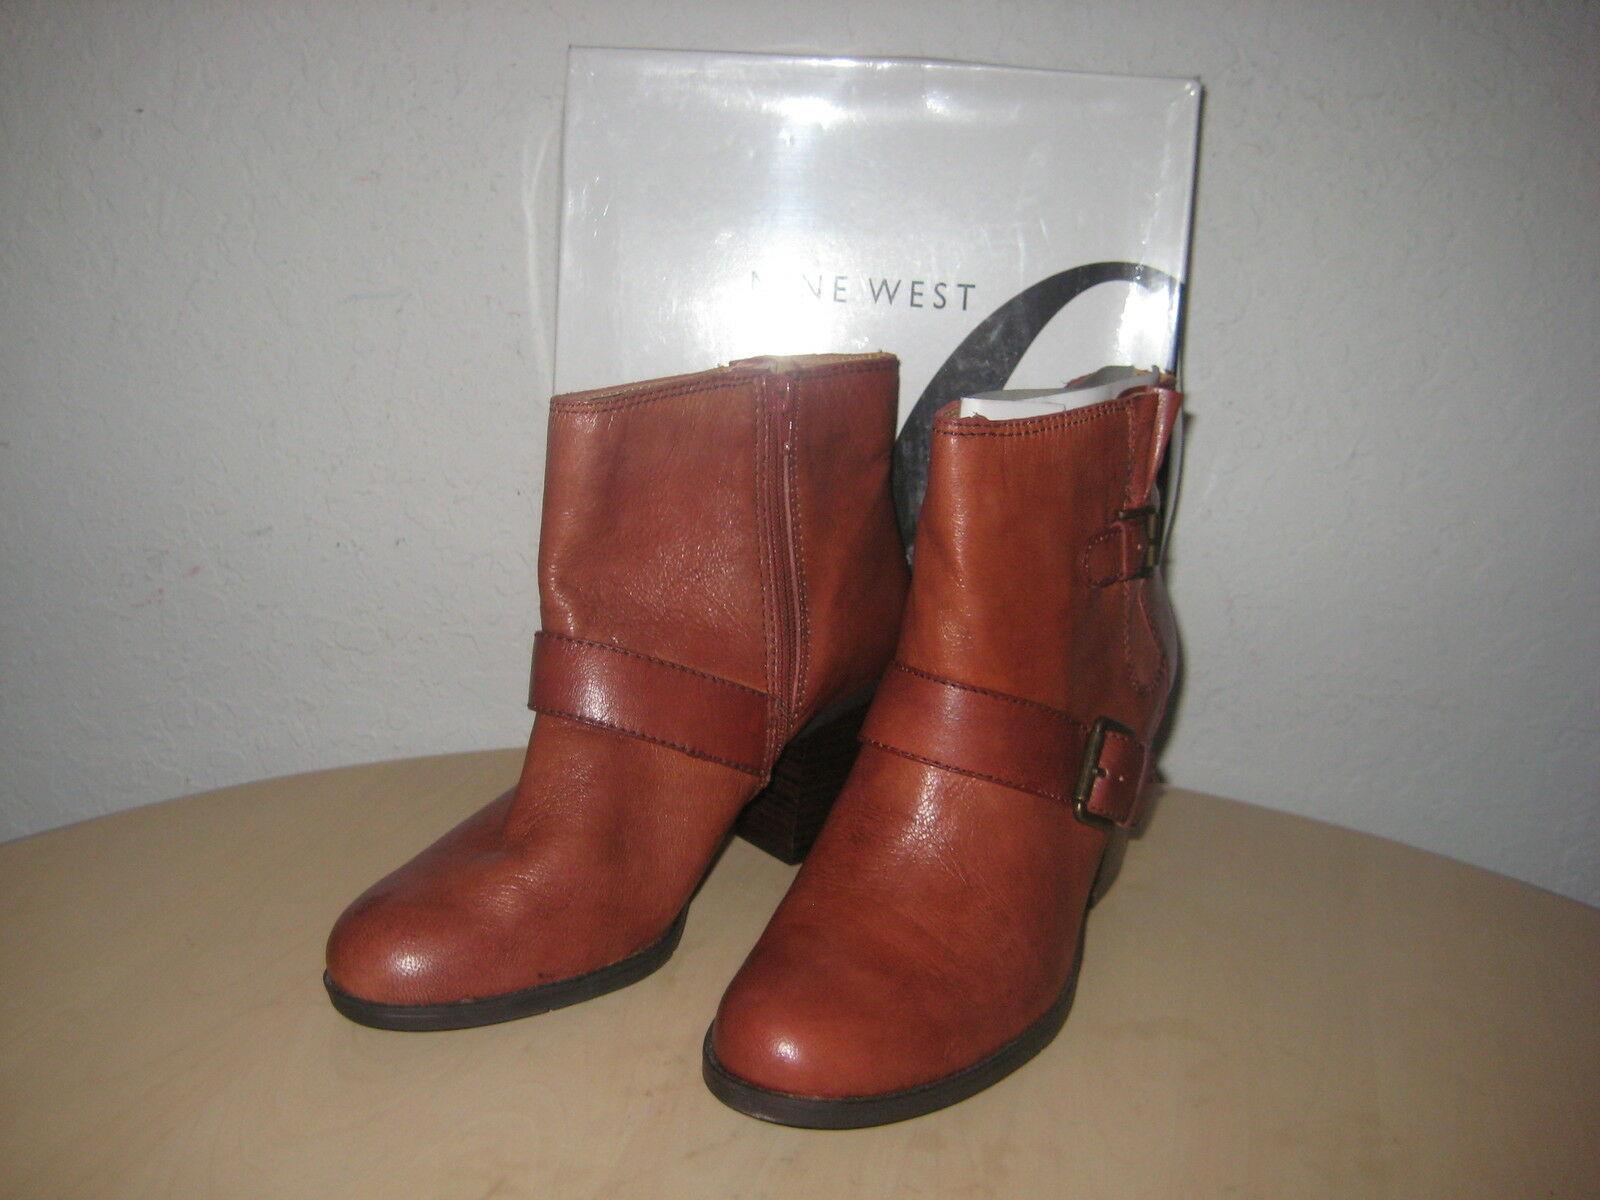 Nine West shoes Size 10.5 M Womens New Lil Dipper Copper Fashion Ankle Boots NWB